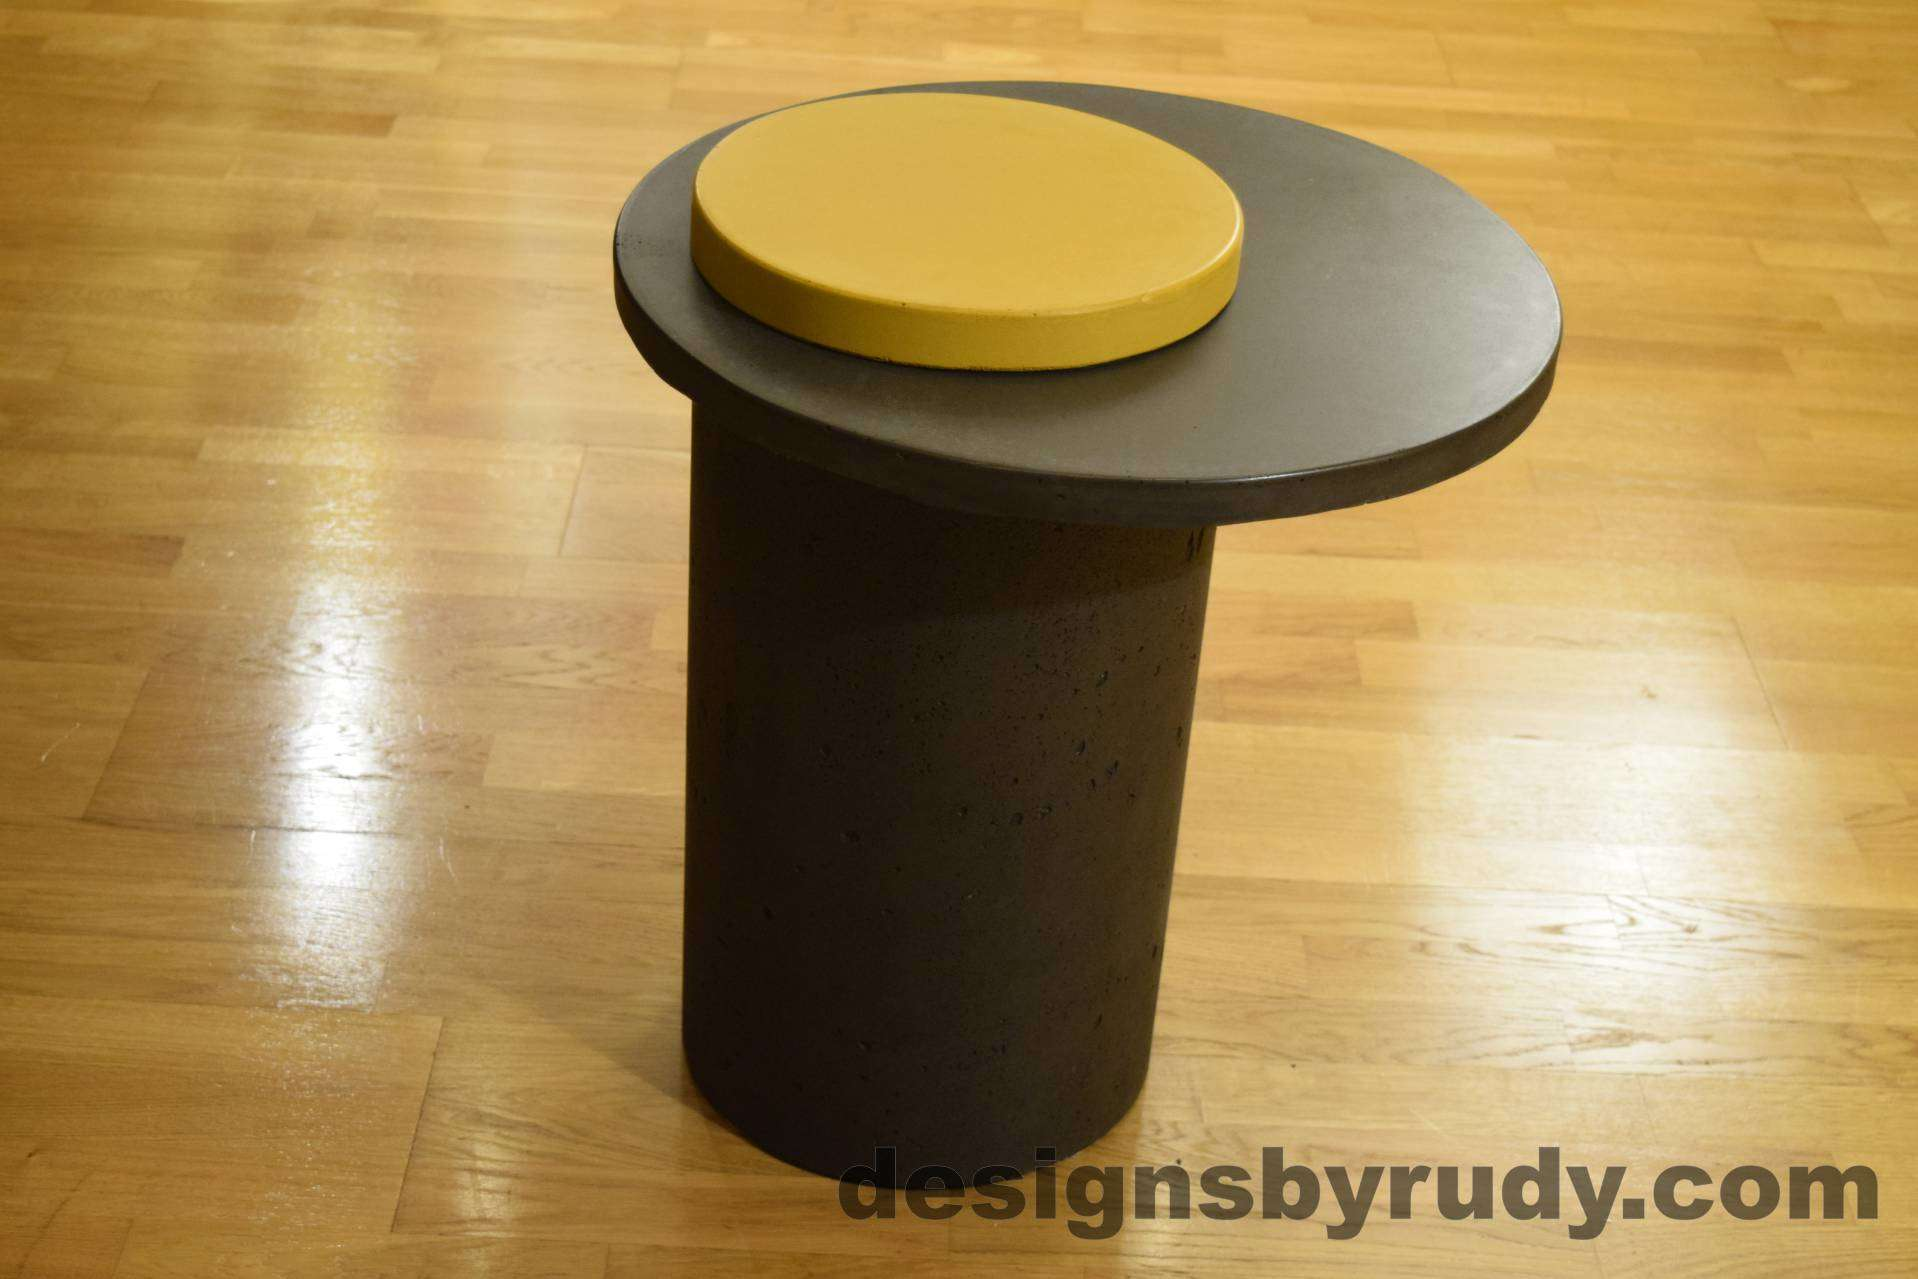 Concrete Side Table, Charcoal Top and Yellow Cap, Pillars model, Designs by Rudy L